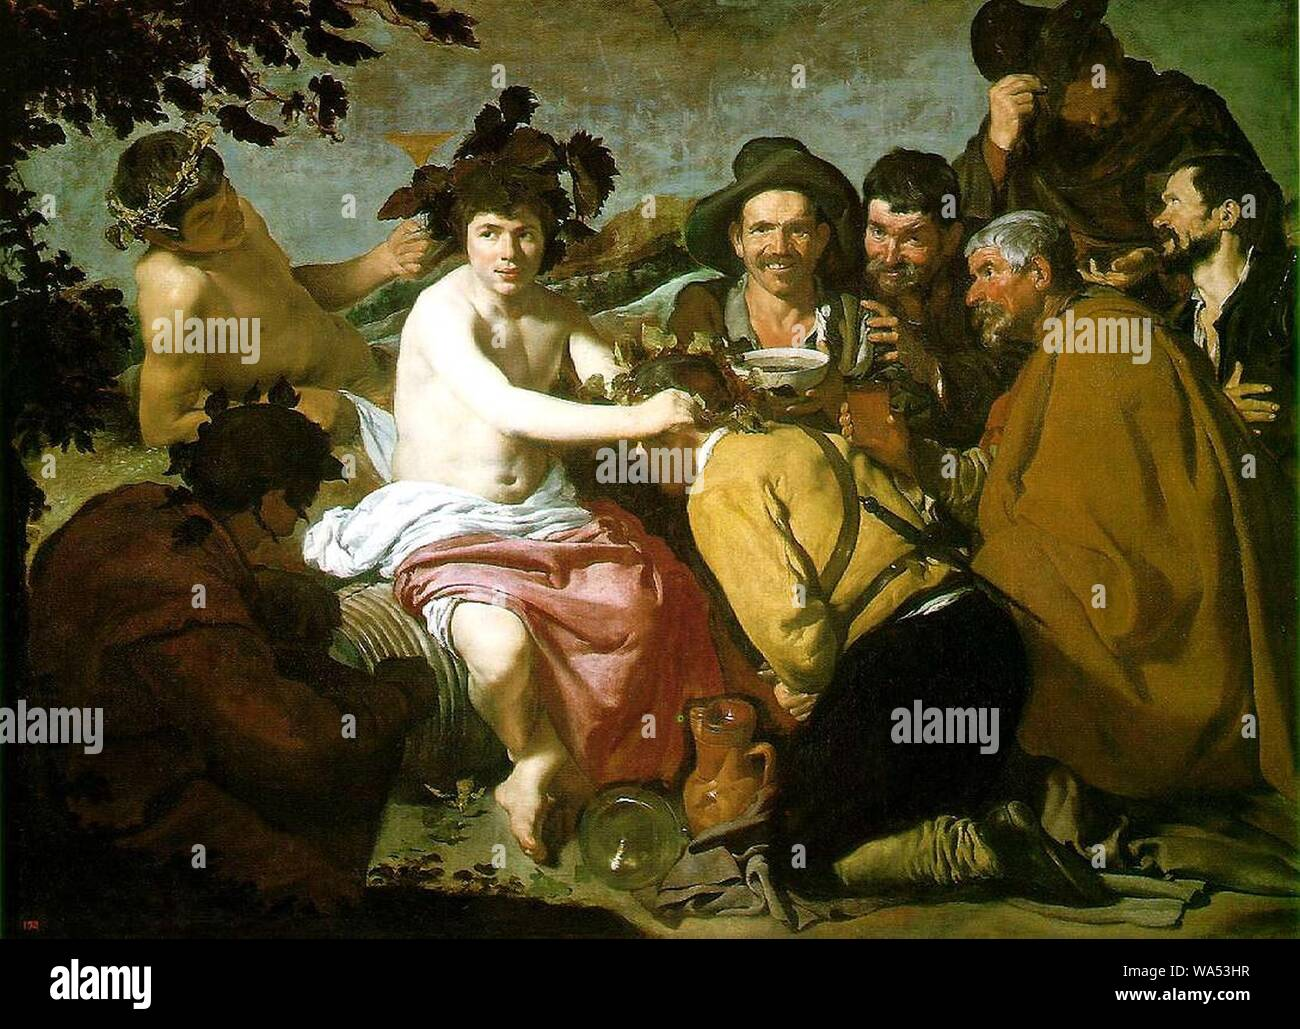 Diego Velasquez, Los Borrachos (The Feast of Bacchus). Stock Photo